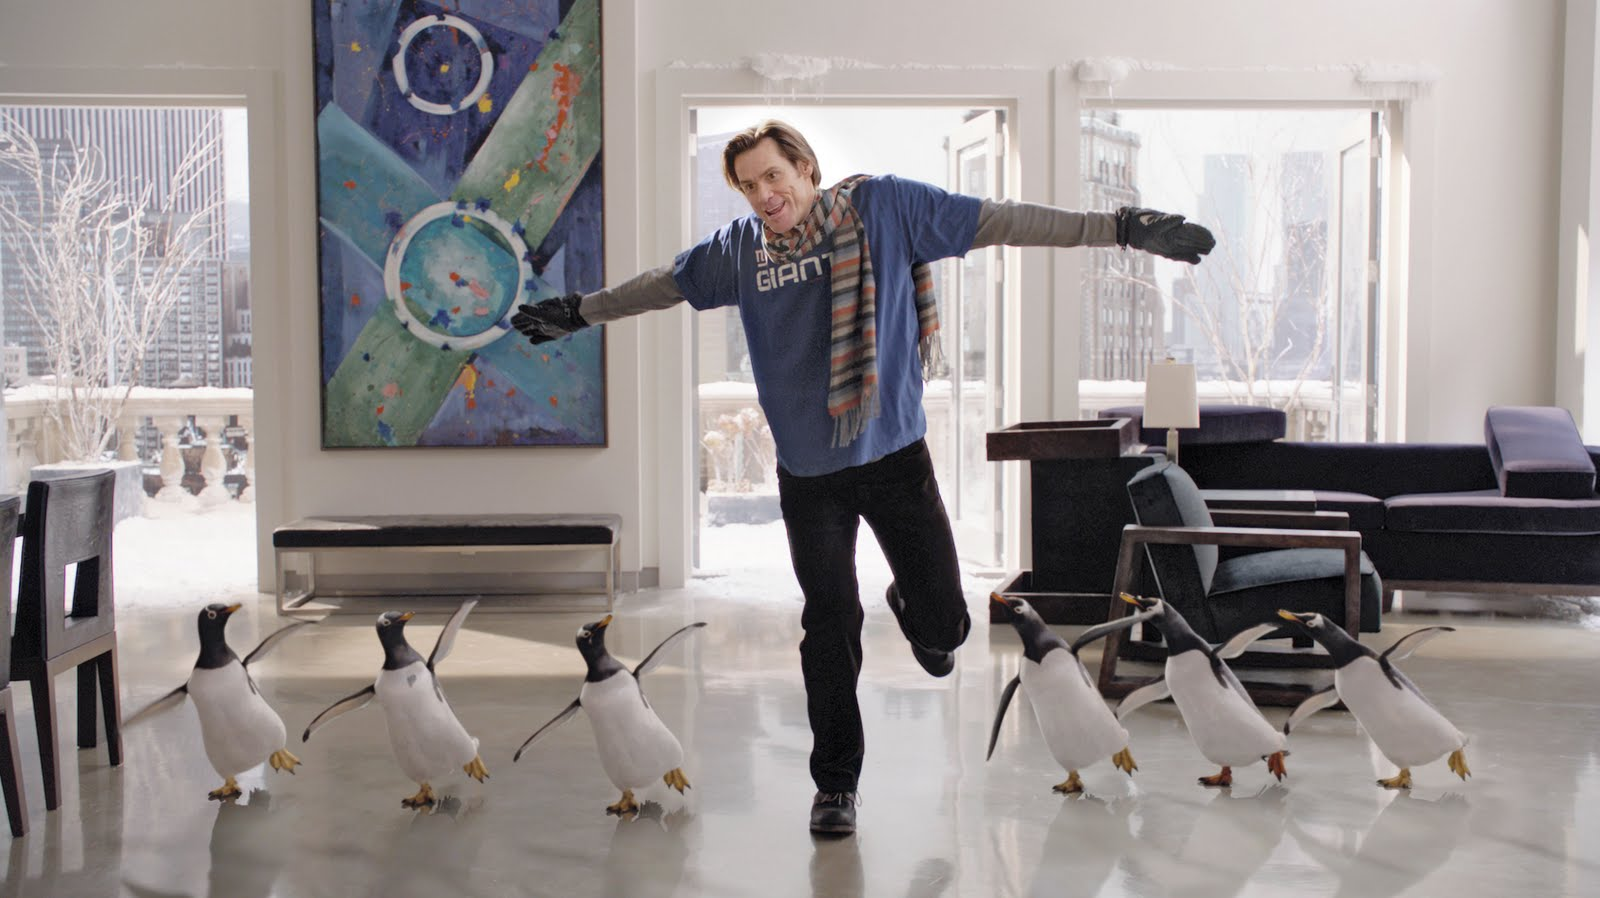 http://2.bp.blogspot.com/-fsdXLcYHyCk/TimGqrTkvWI/AAAAAAAAHQ0/ip971xmEKr0/s1600/mr-poppers-penguins-movie-image-jim-carrey-041.jpg